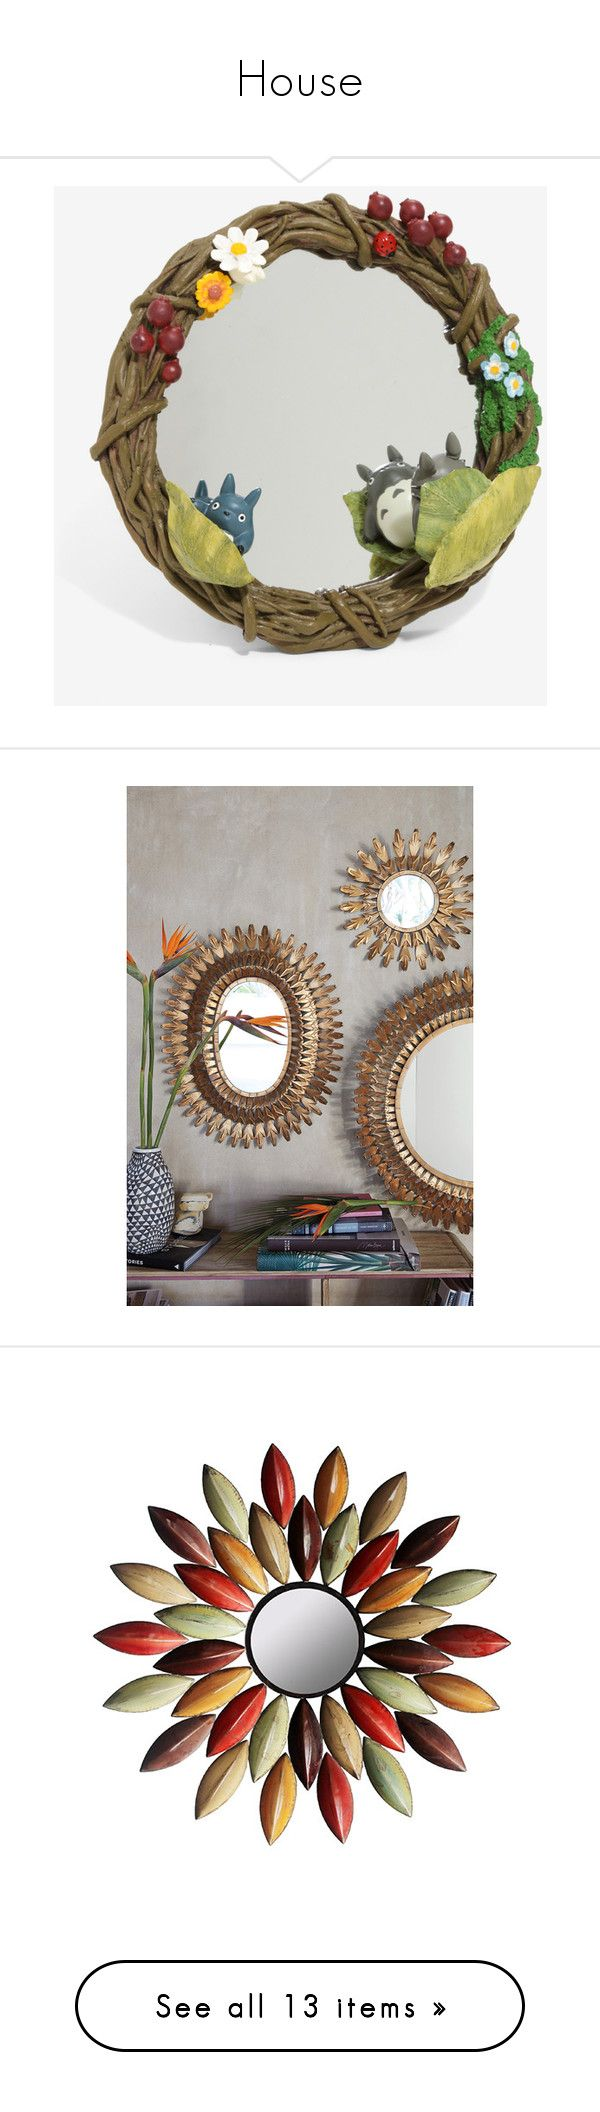 """""""House"""" by selflover ❤ liked on Polyvore featuring home, home decor, mirrors, studio ghibli, bronze, anthropologie, bronze mirror, anthropologie home decor, anthropologie mirror and bronze home decor"""